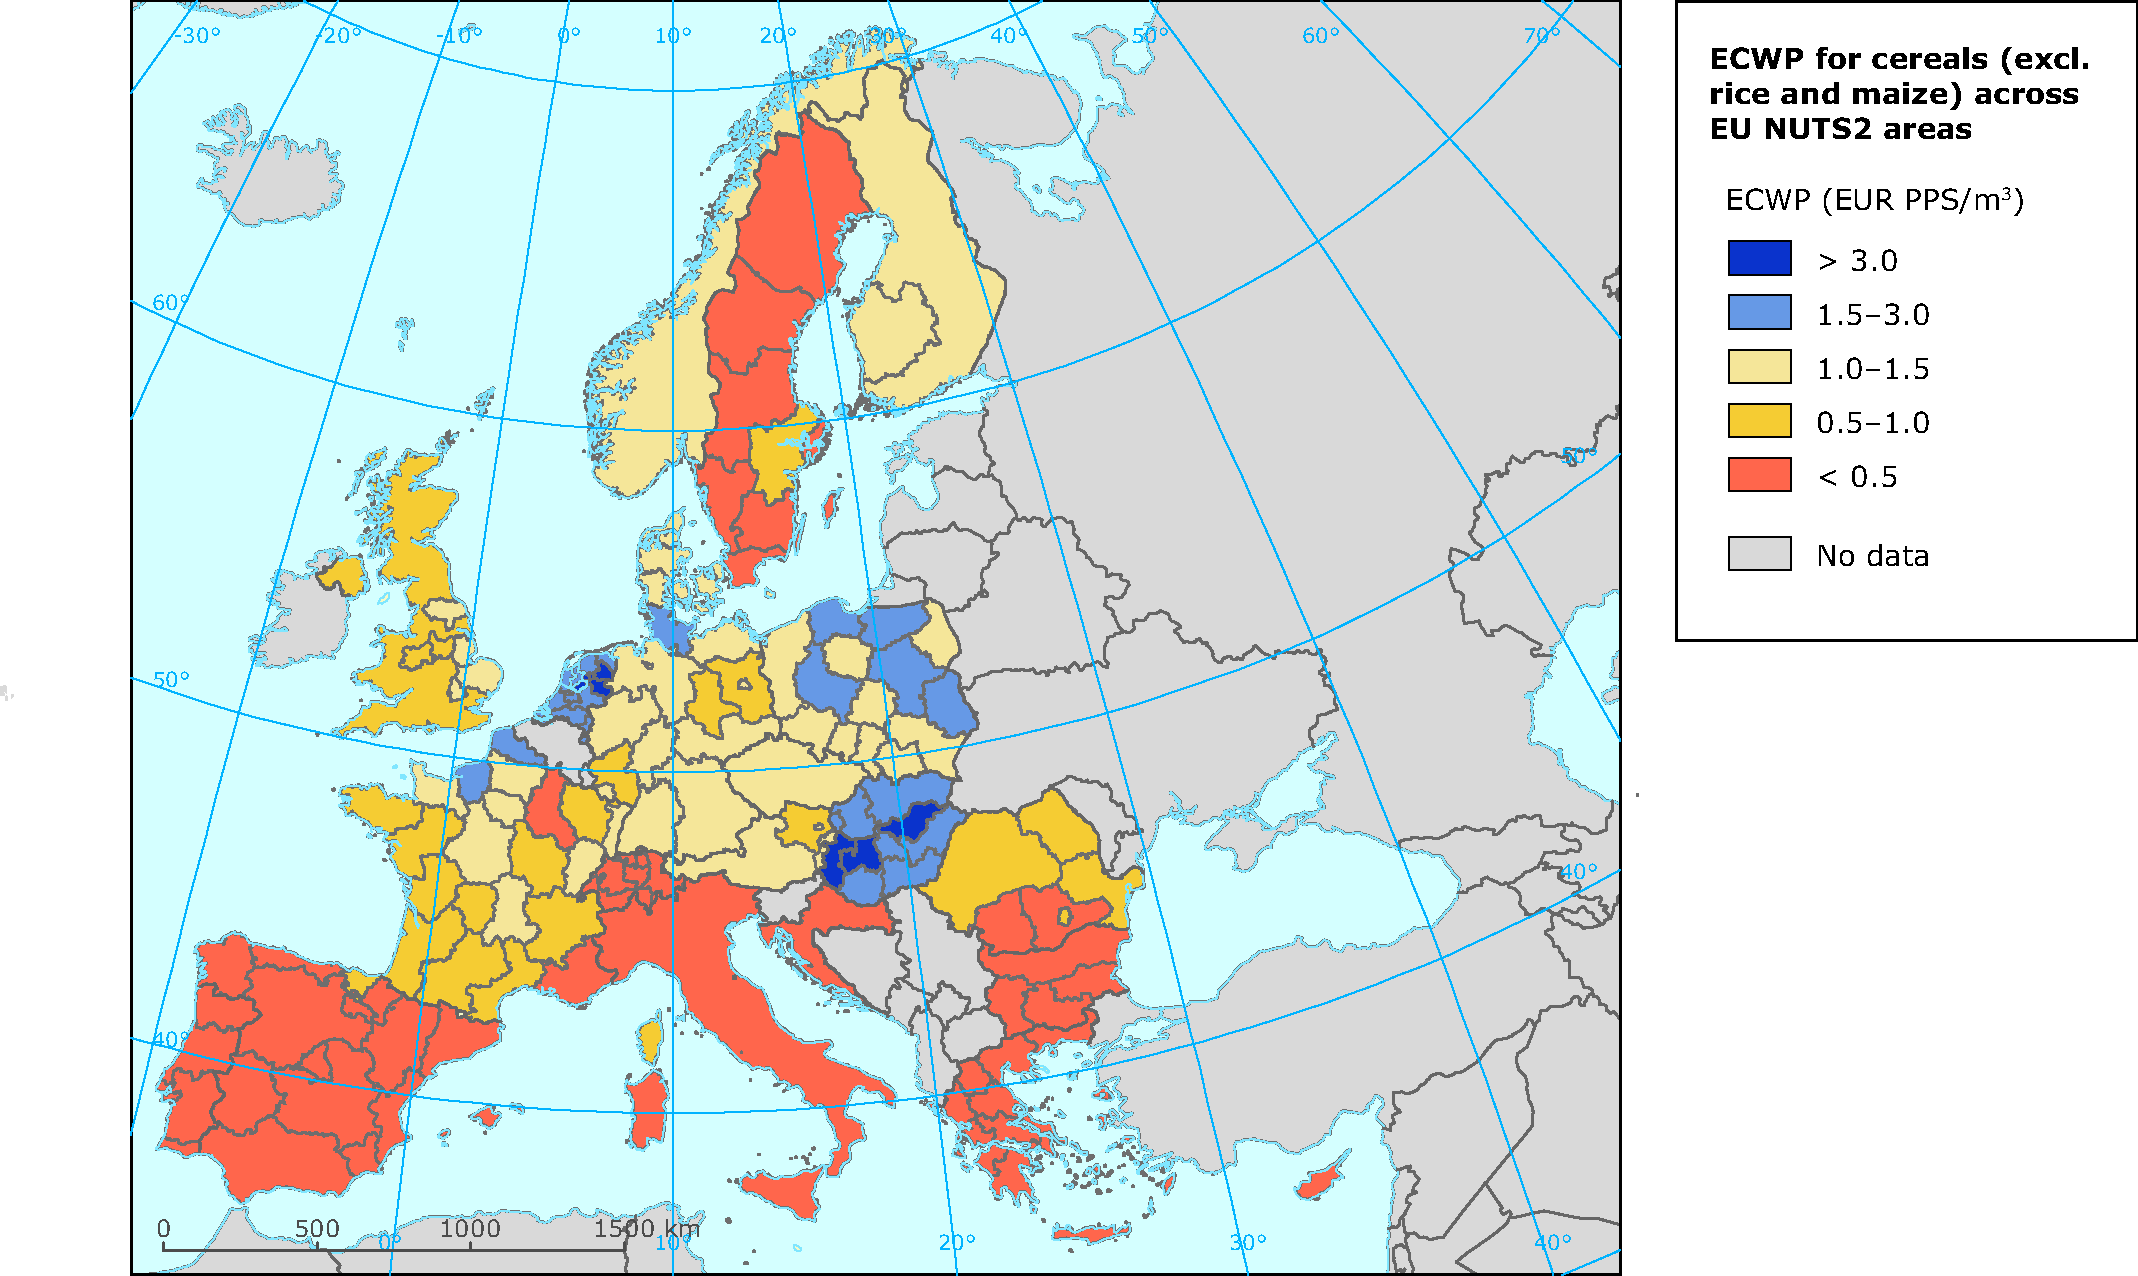 ECWP (in € PPS/m3) for cereals  (excl. maize and rice) across EU NUTS2 areas